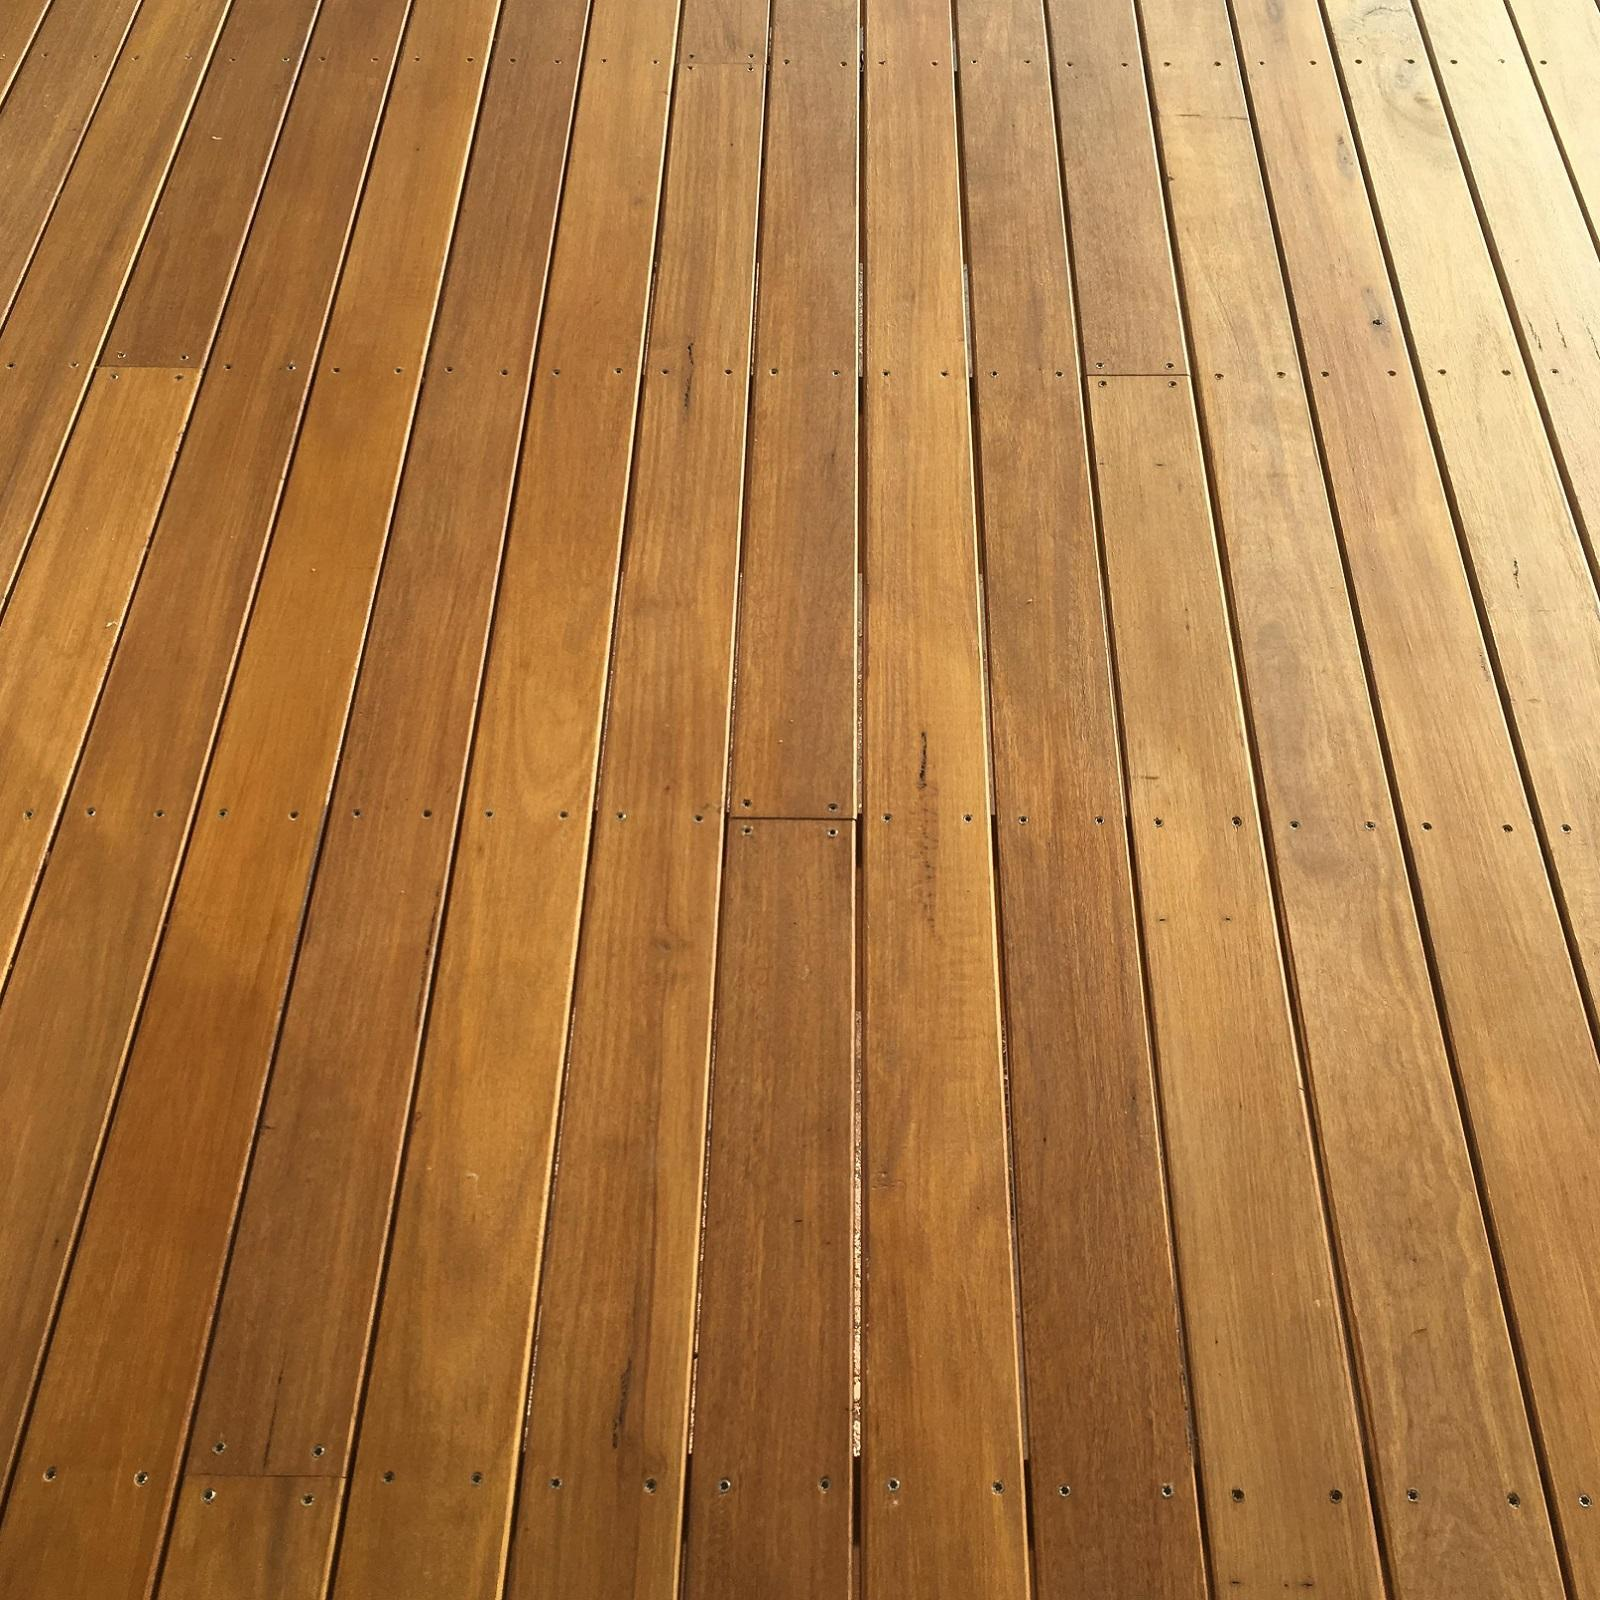 Boral 130 x 19mm Yellow Stringybark Standard and Better Decking